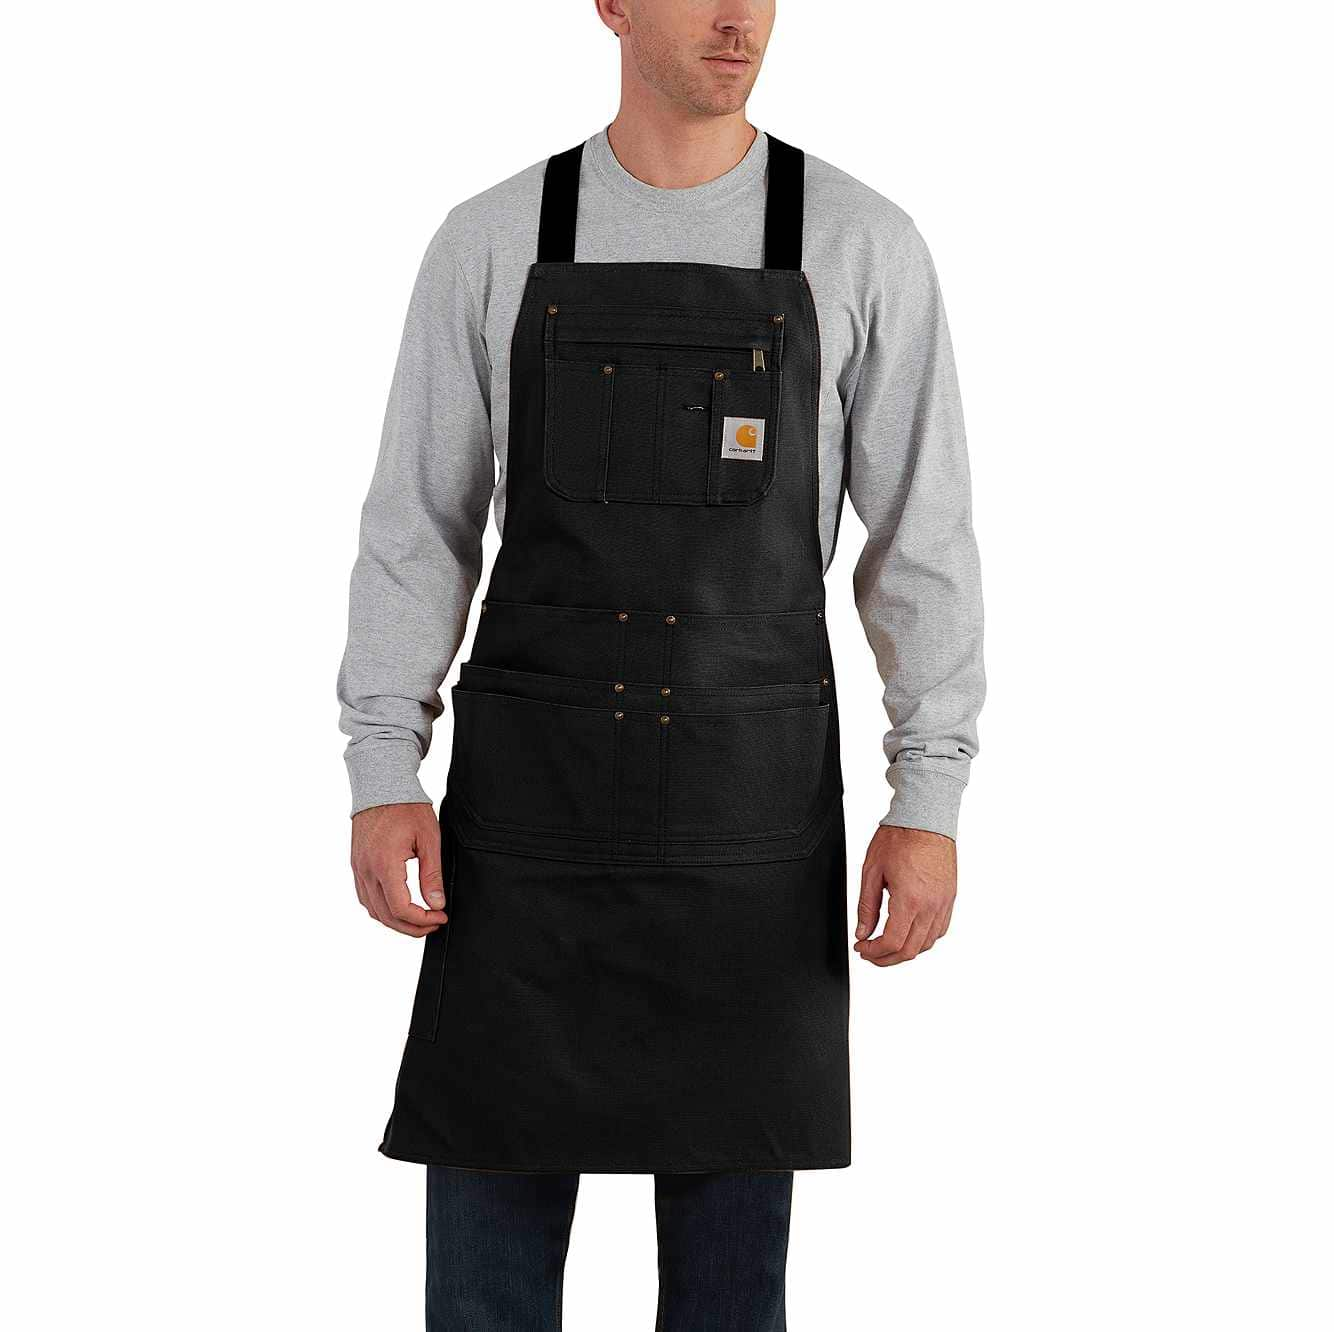 Picture of Apron in Black